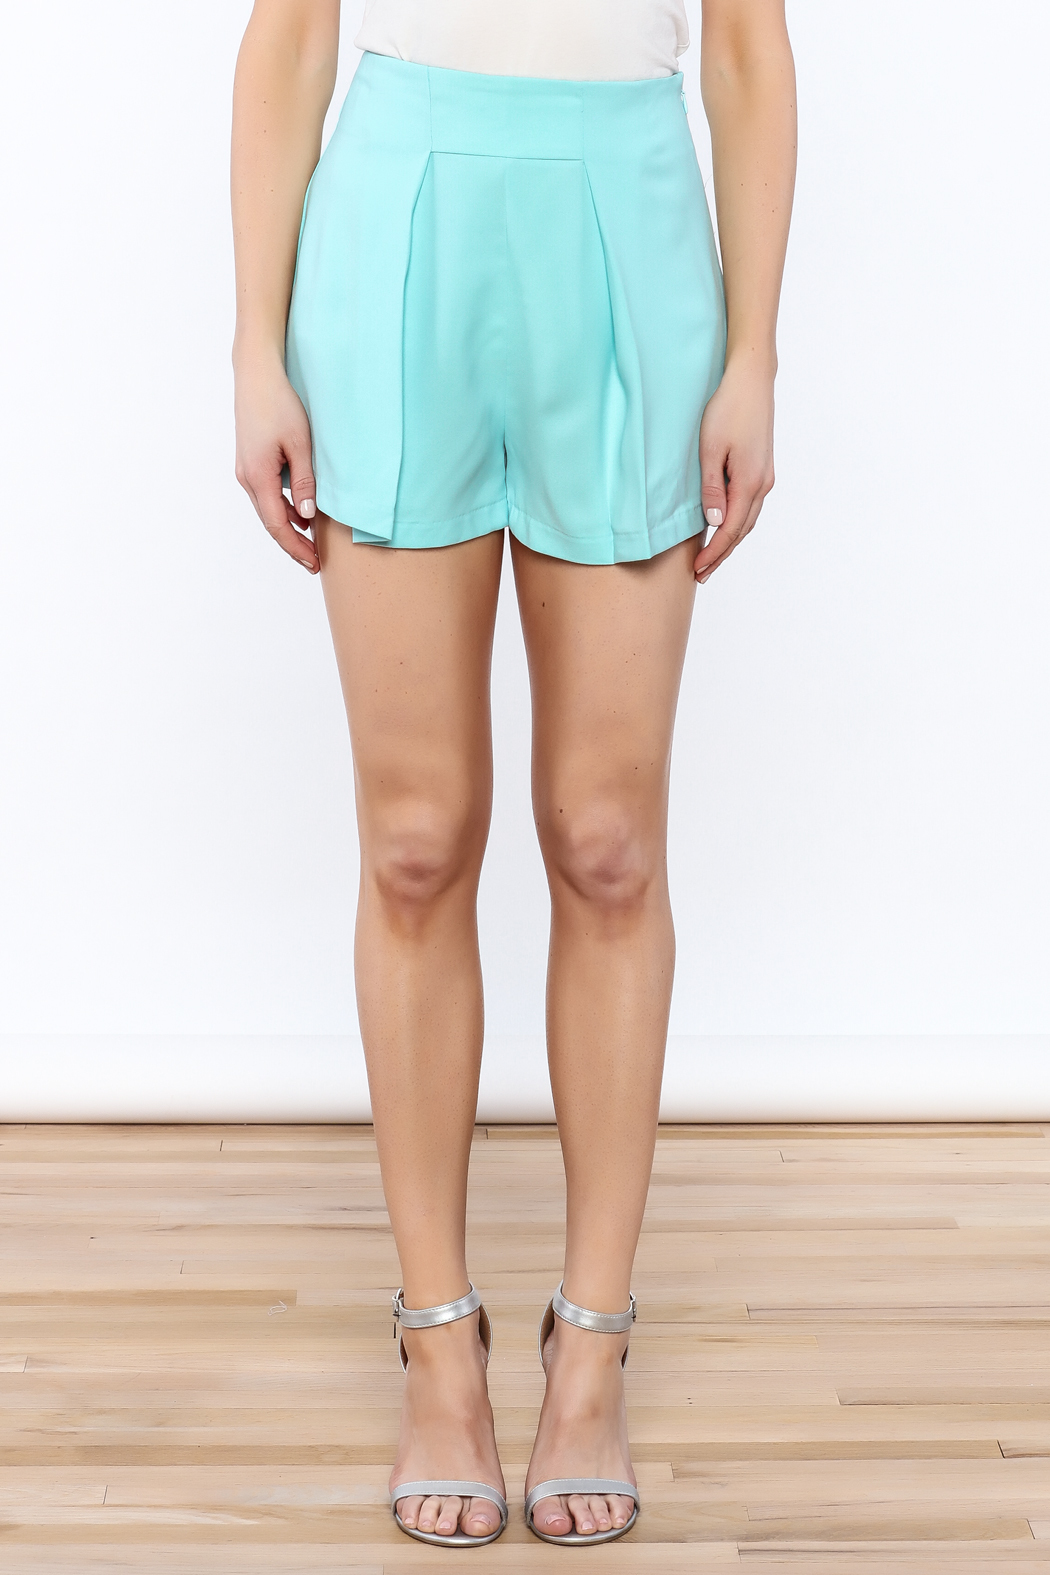 Do & Be Powder Blue Shorts from Manhattan by Dor L'Dor — Shoptiques